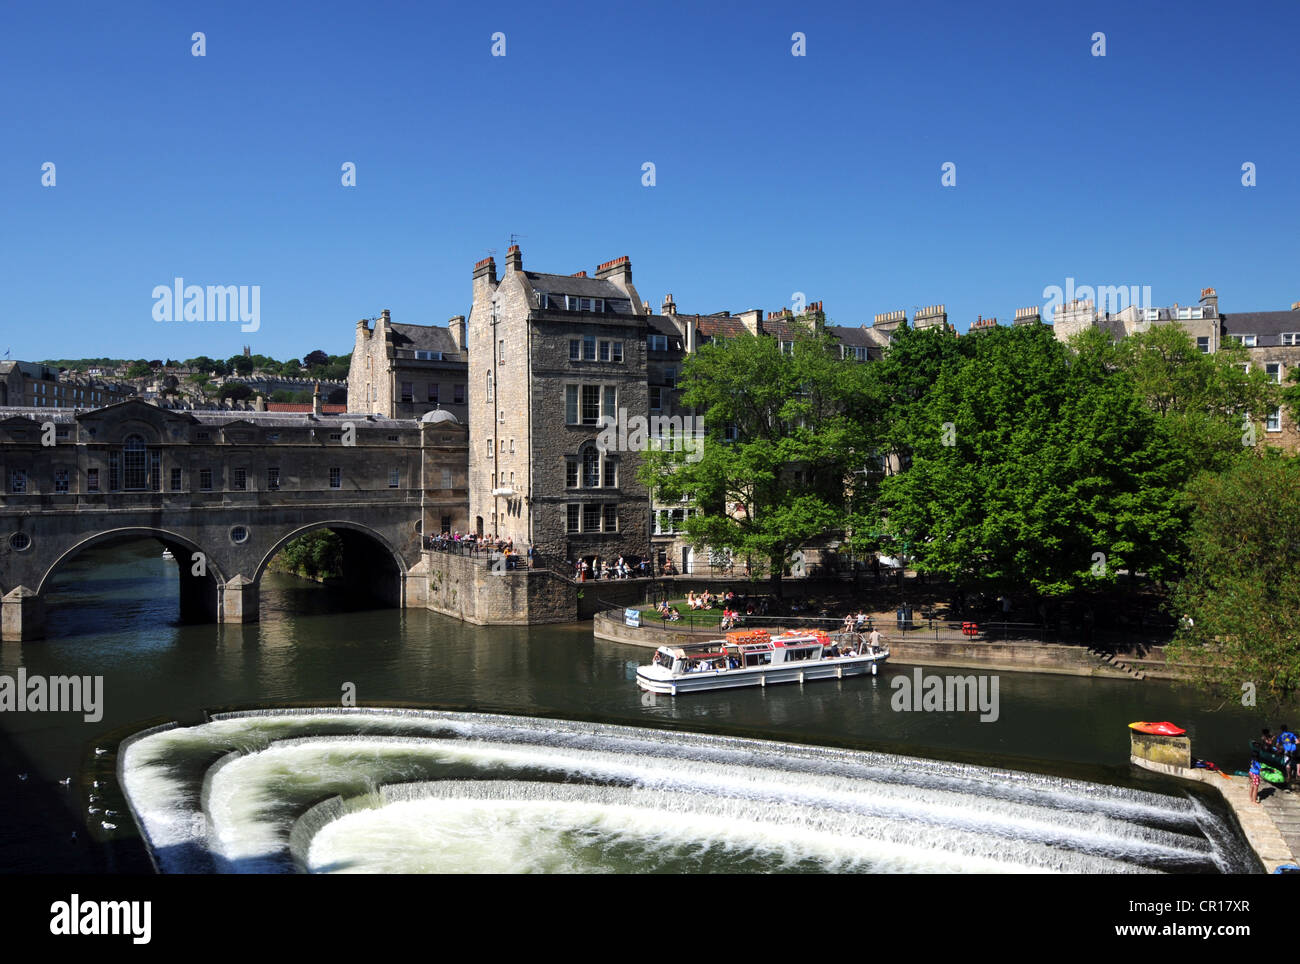 Bath, Weir and Pulteney Bridge on the River Avon in Bath, Somerset, Britain, UK - Stock Image